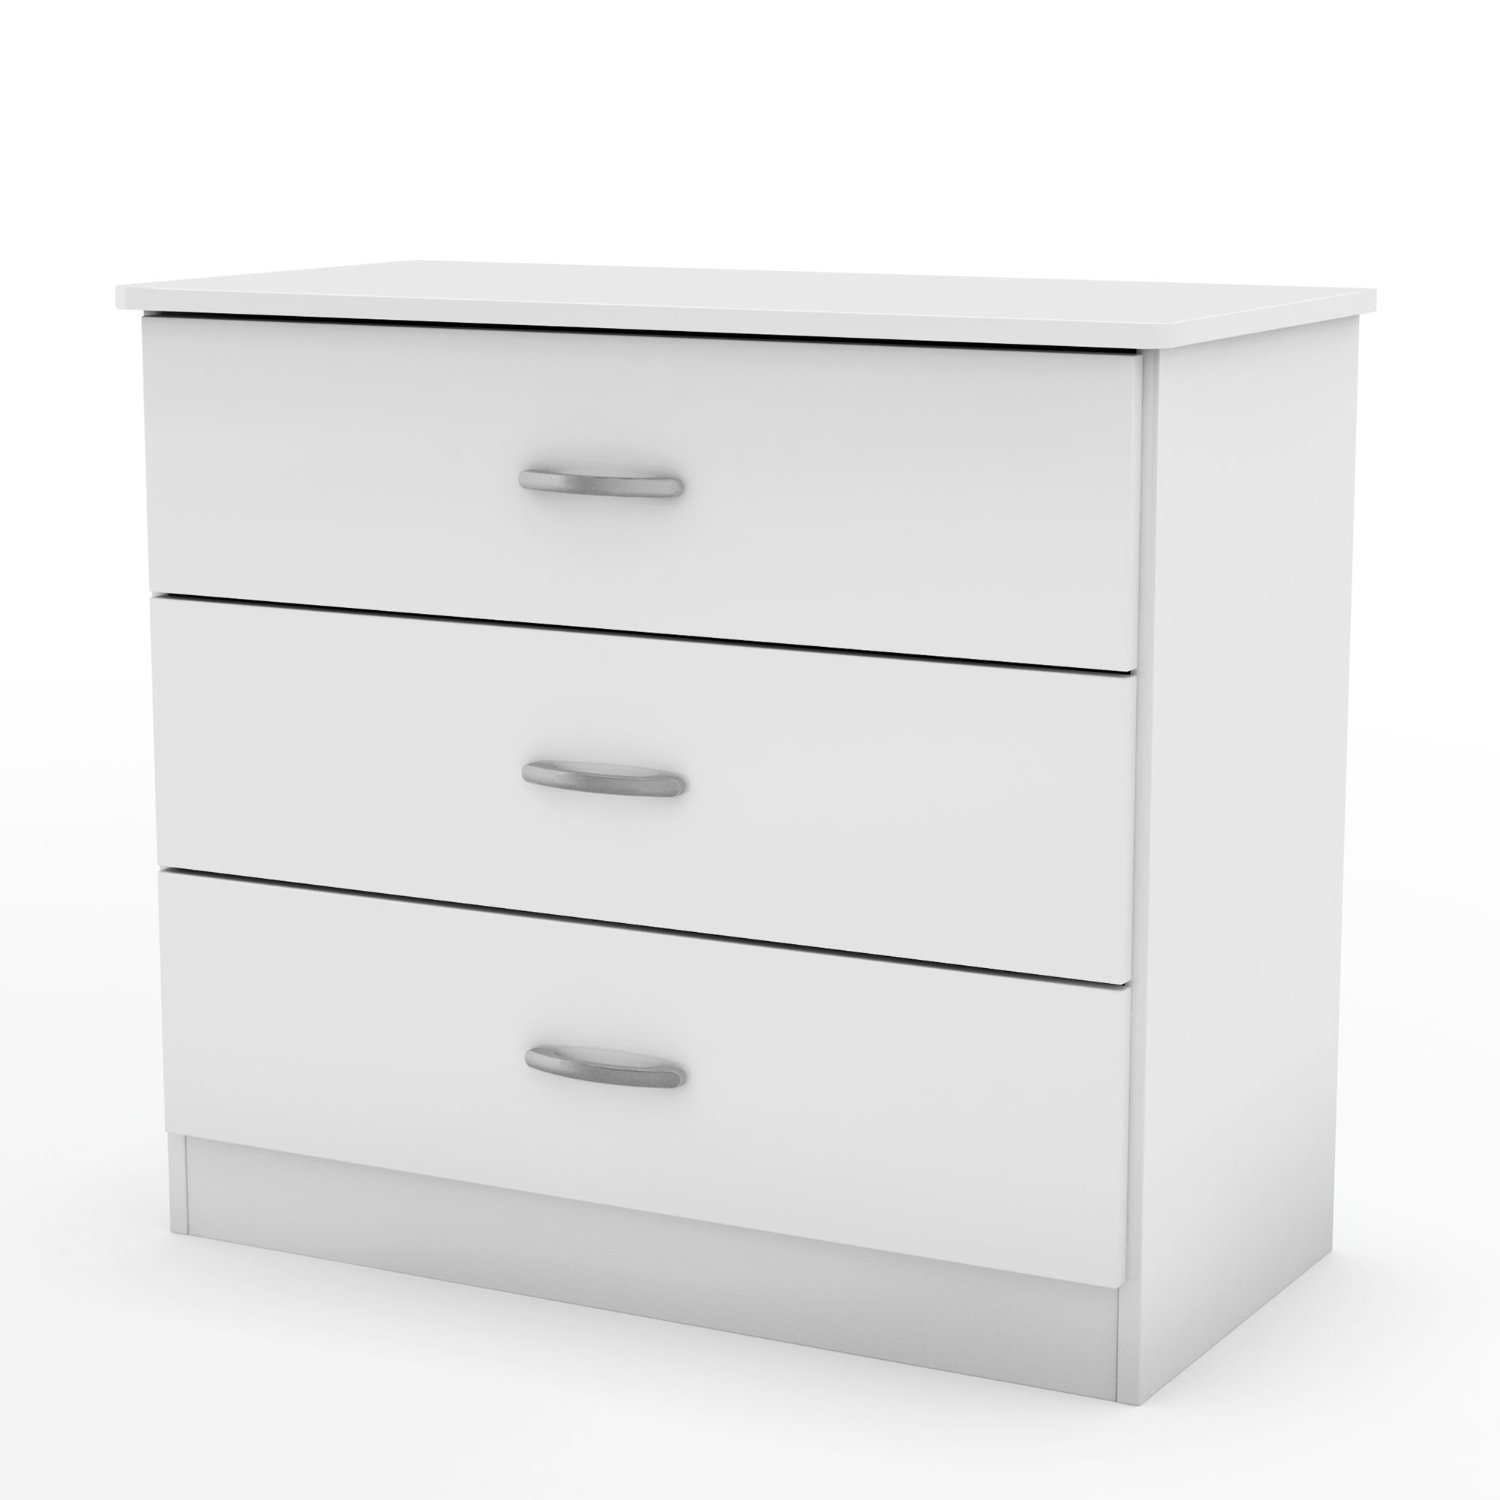 Kids children toddler south shore libra collection 3 Dressers for kids